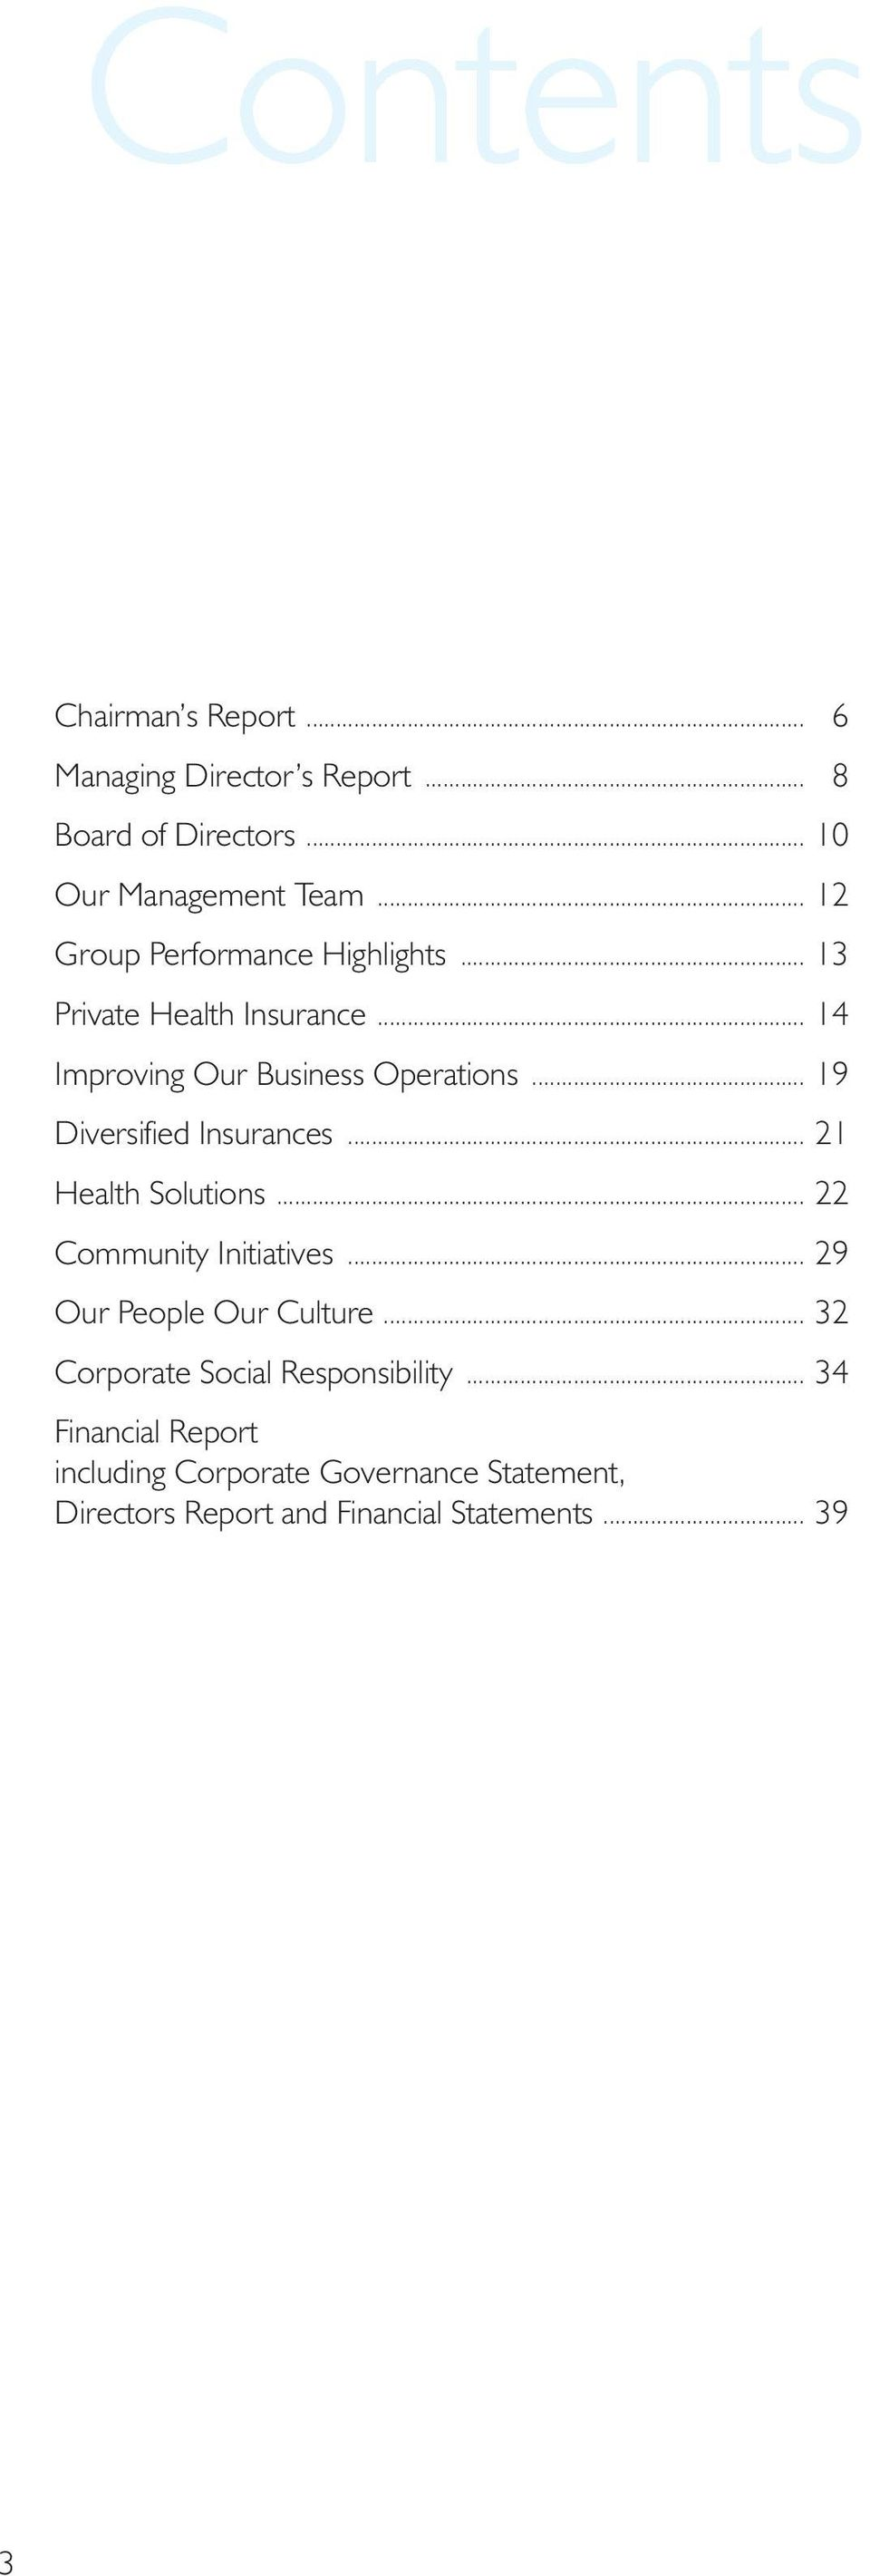 .. 19 Diversified Insurances... 21 Health Solutions... 22 Community Initiatives... 29 Our People Our Culture.